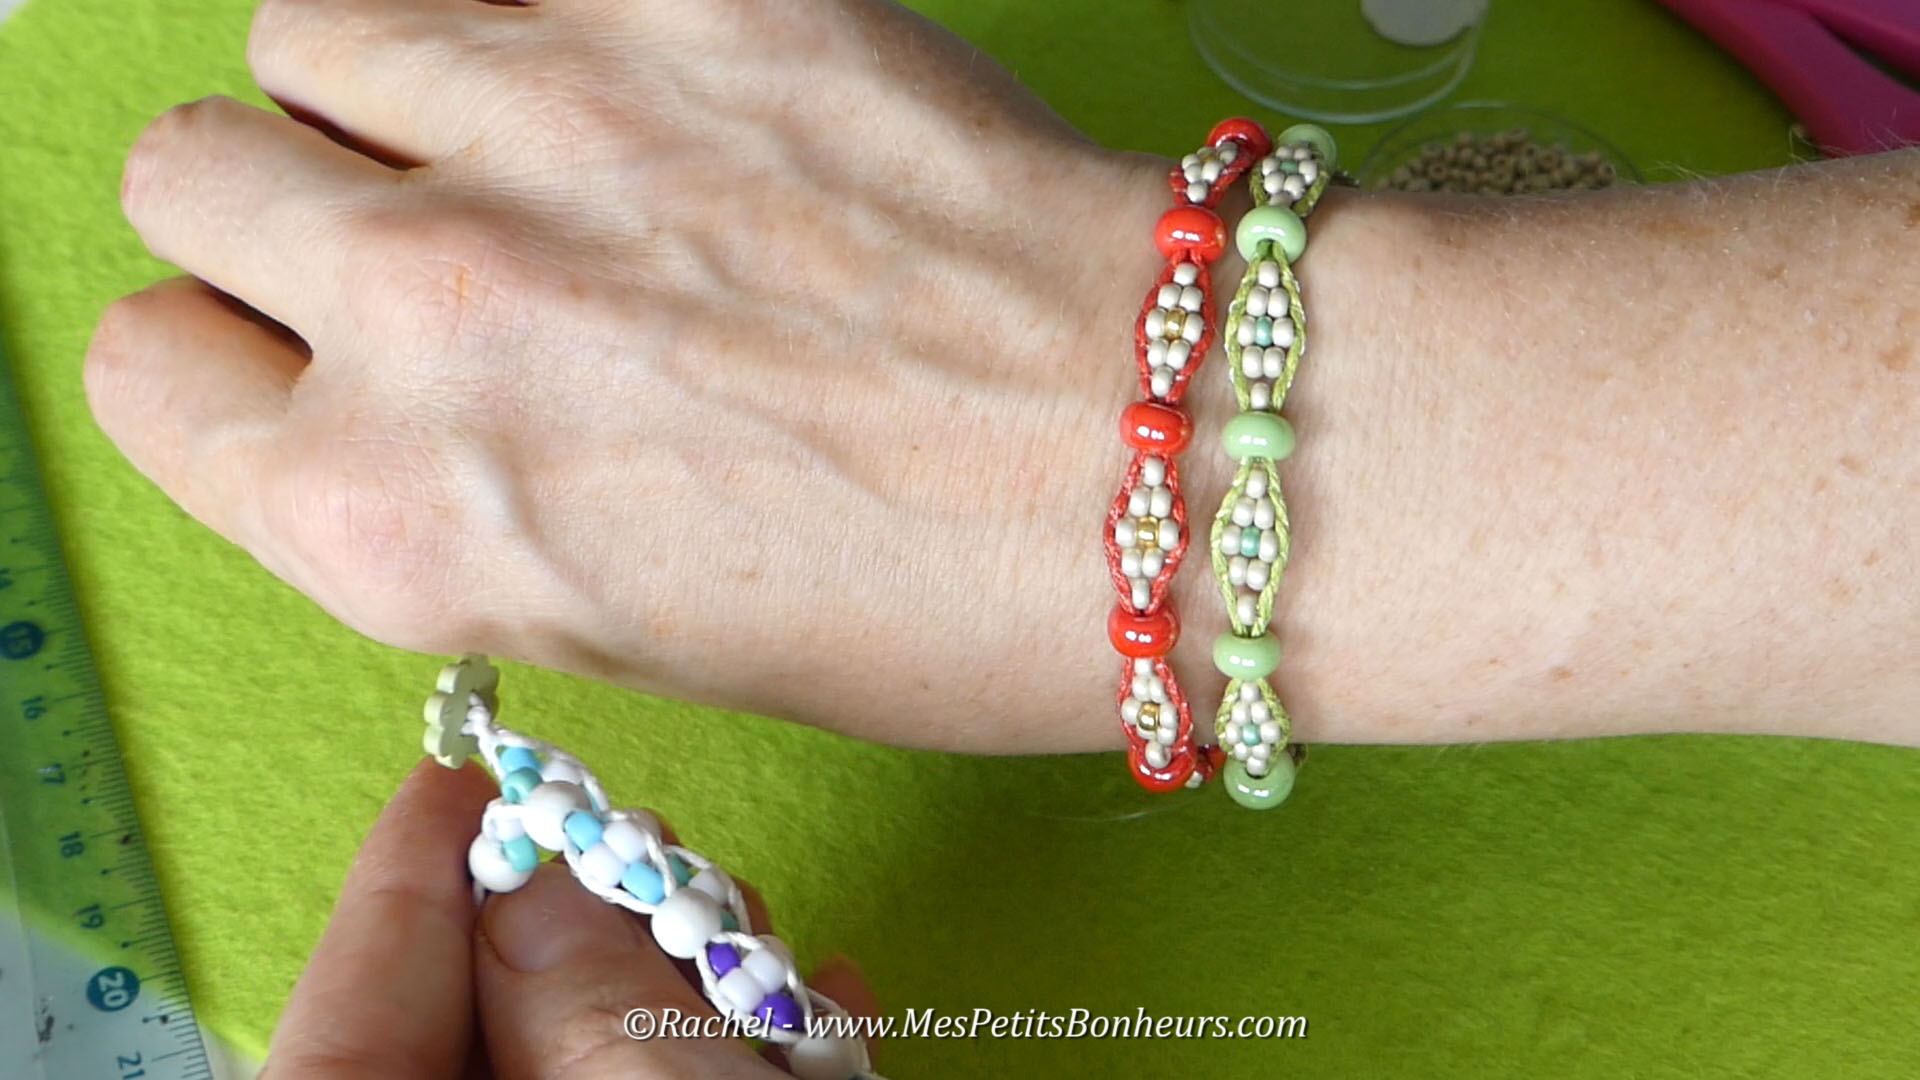 wrapit loom bracelets wrap it modele tuto video perles tissage